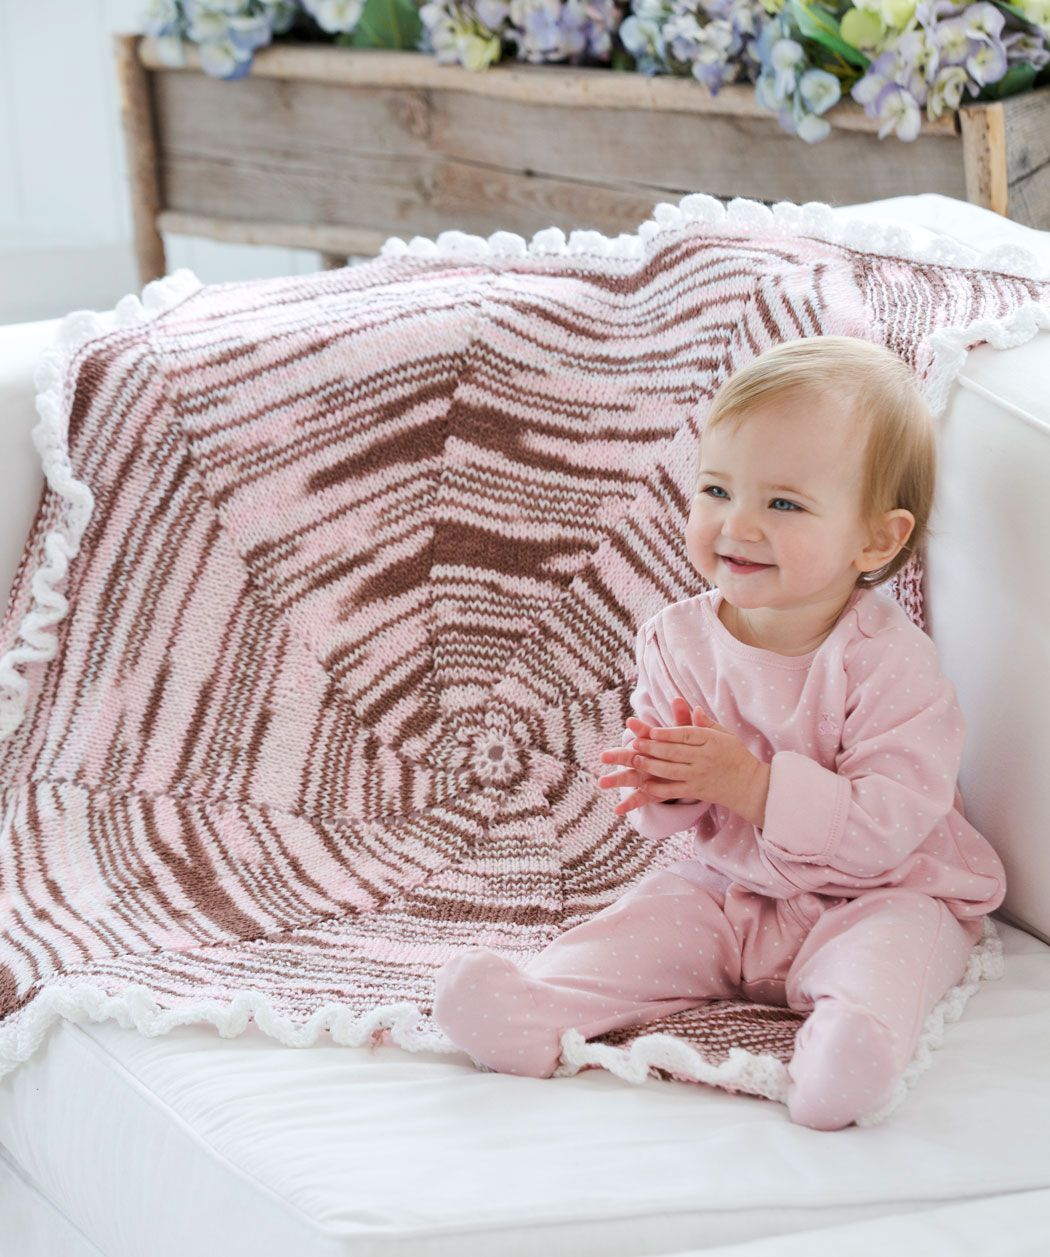 Baby your baby blanket free knitting pattern from red heart yarns baby your baby blanket free knitting pattern from red heart yarns bankloansurffo Gallery